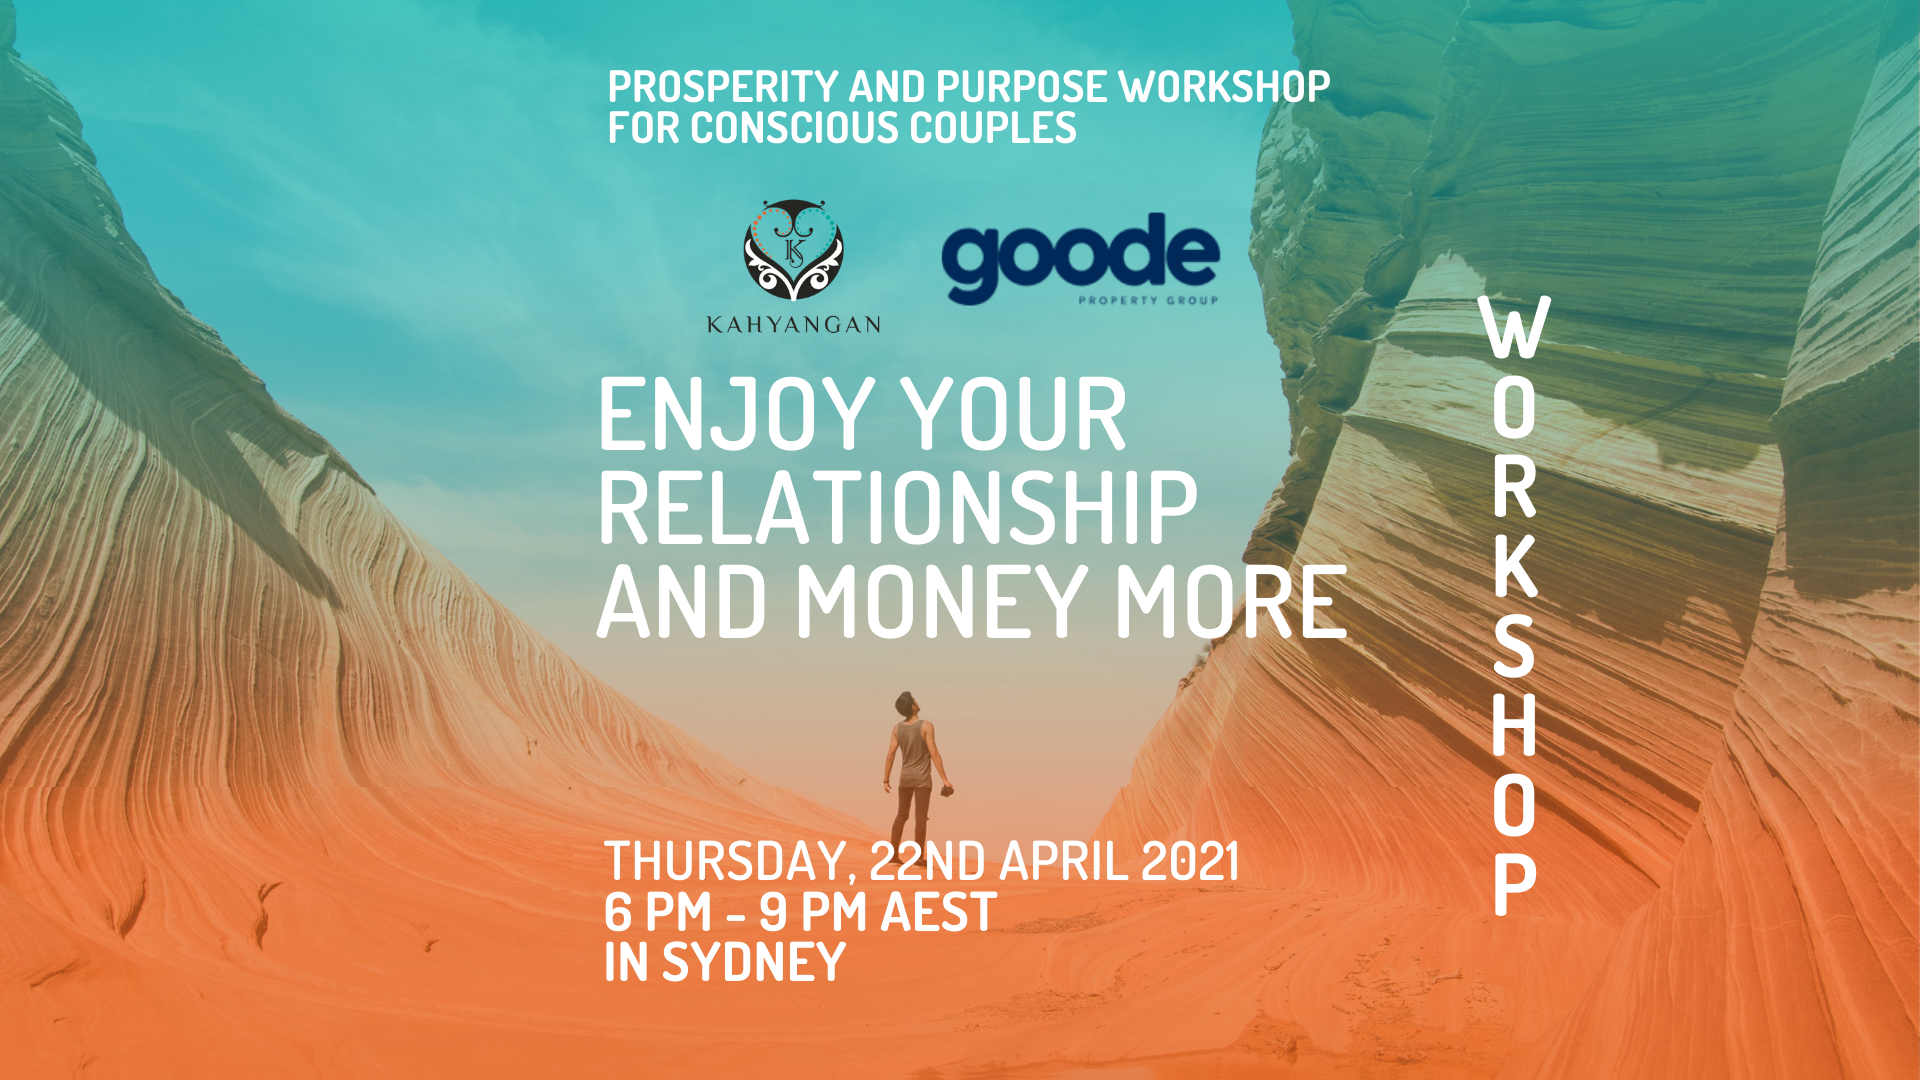 Prosperity Purpose Workshop Sydney